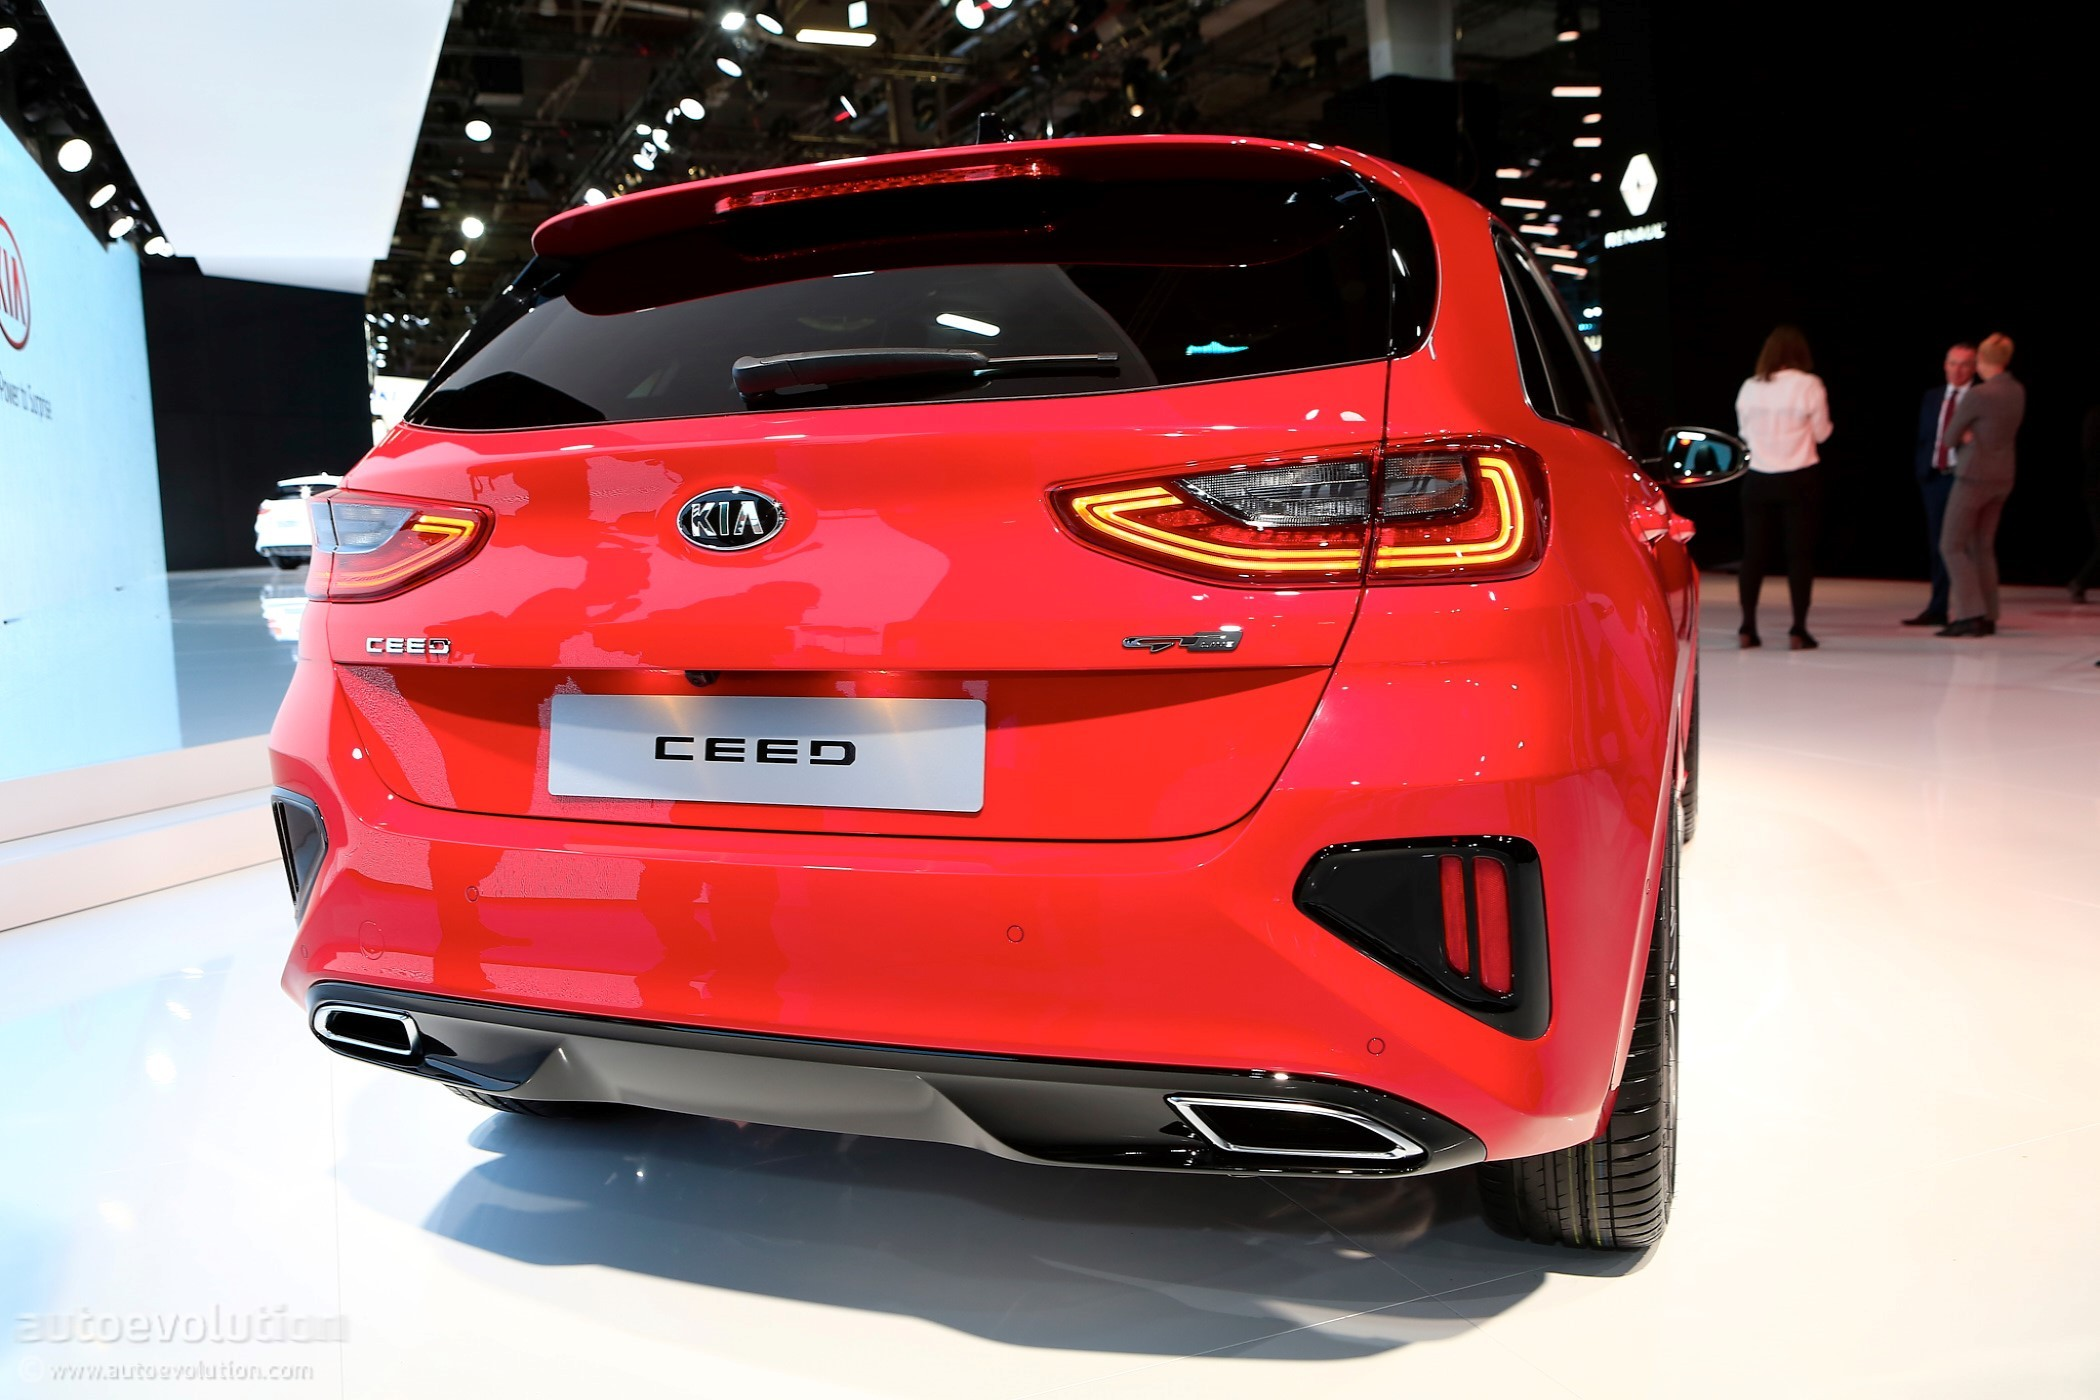 2019 Kia Ceed Gt Line Tries Too Hard To Look Fast